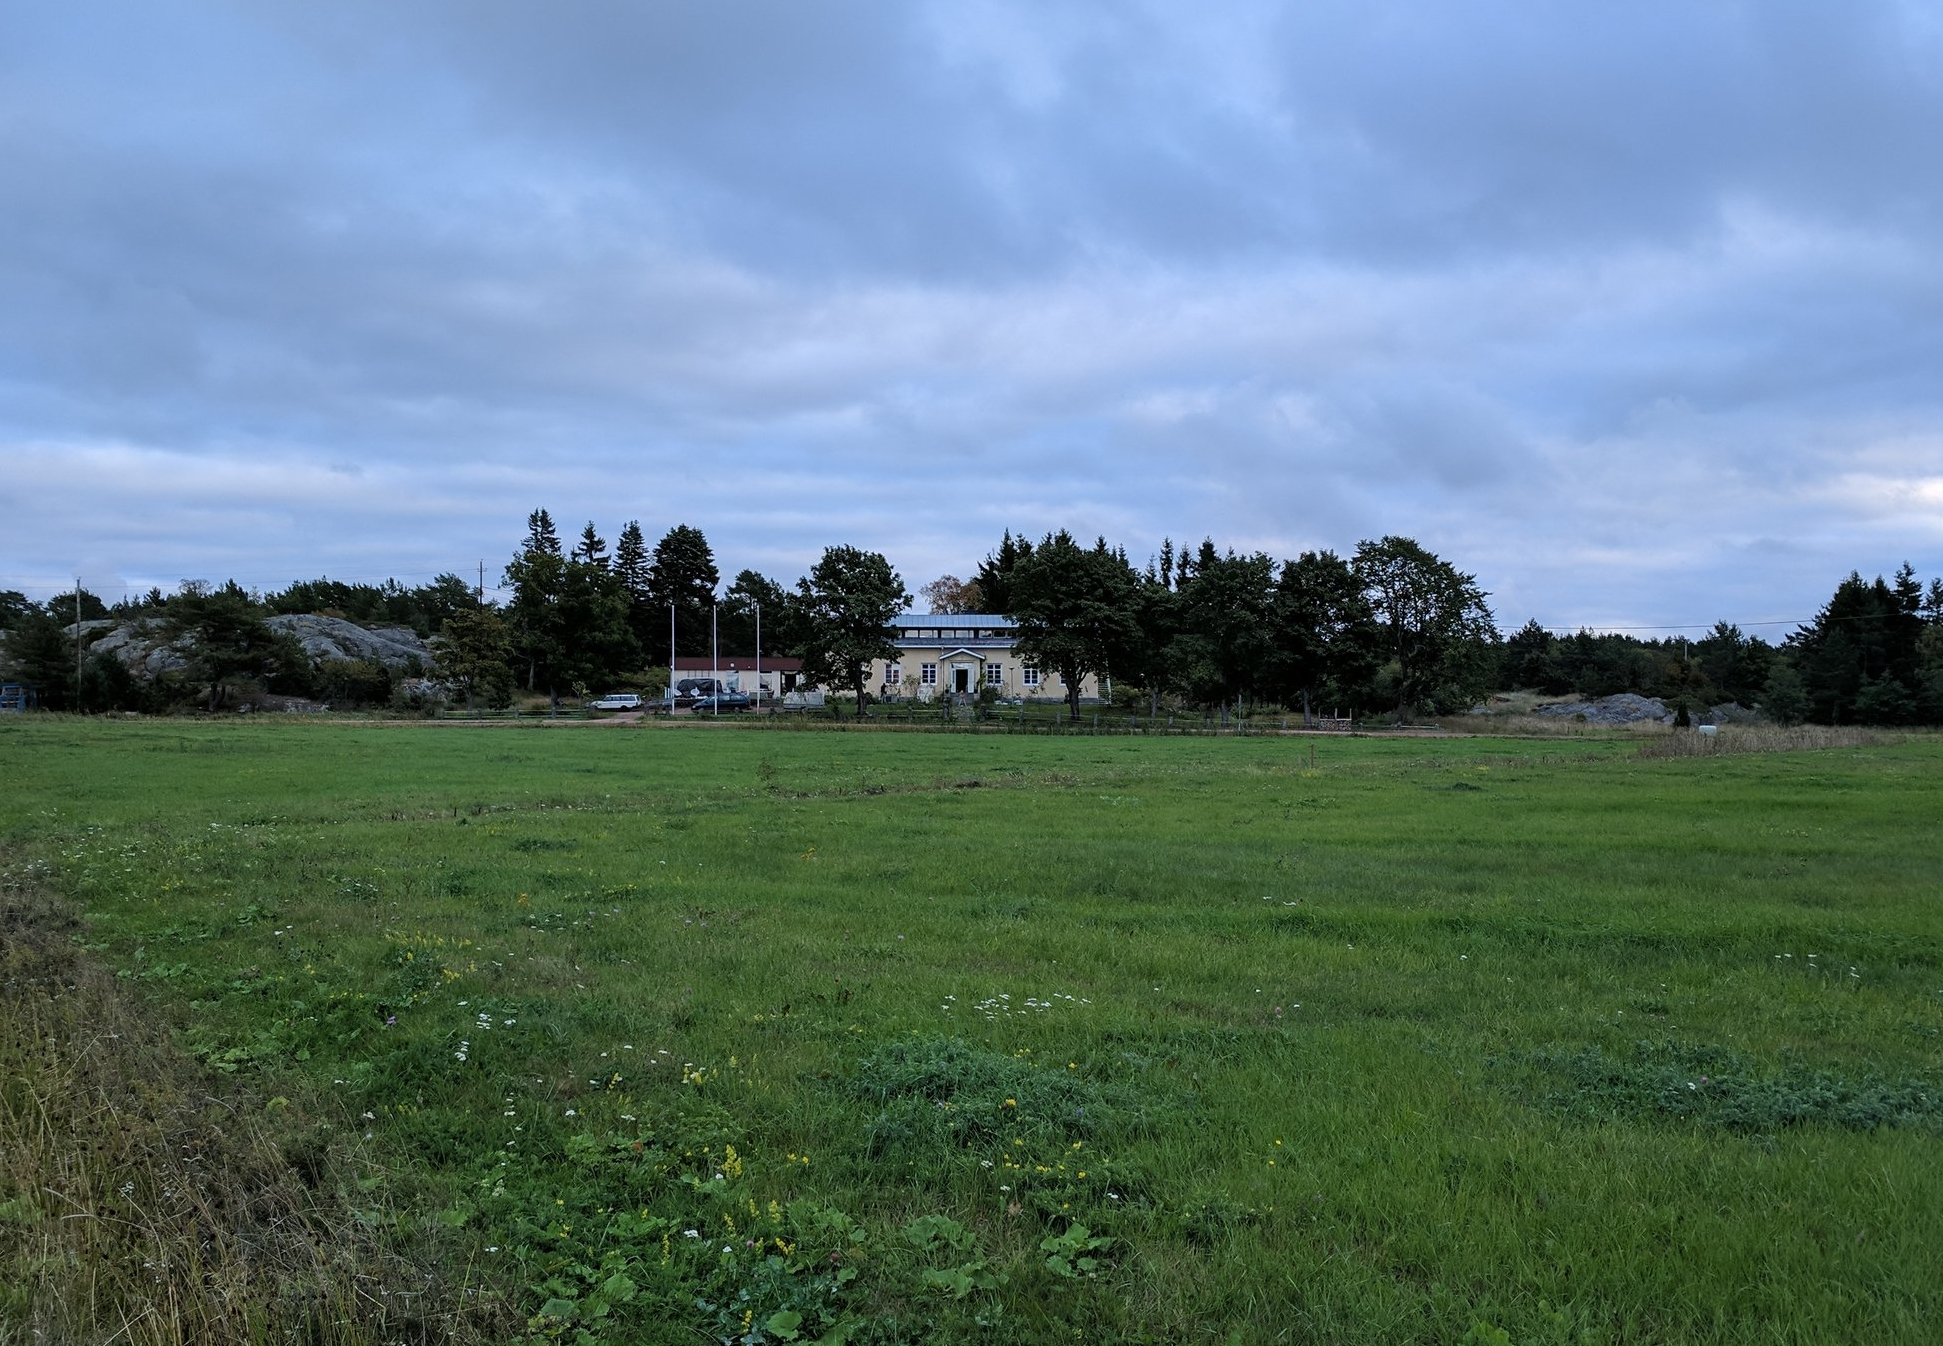 a view of the hotel from across a meadow